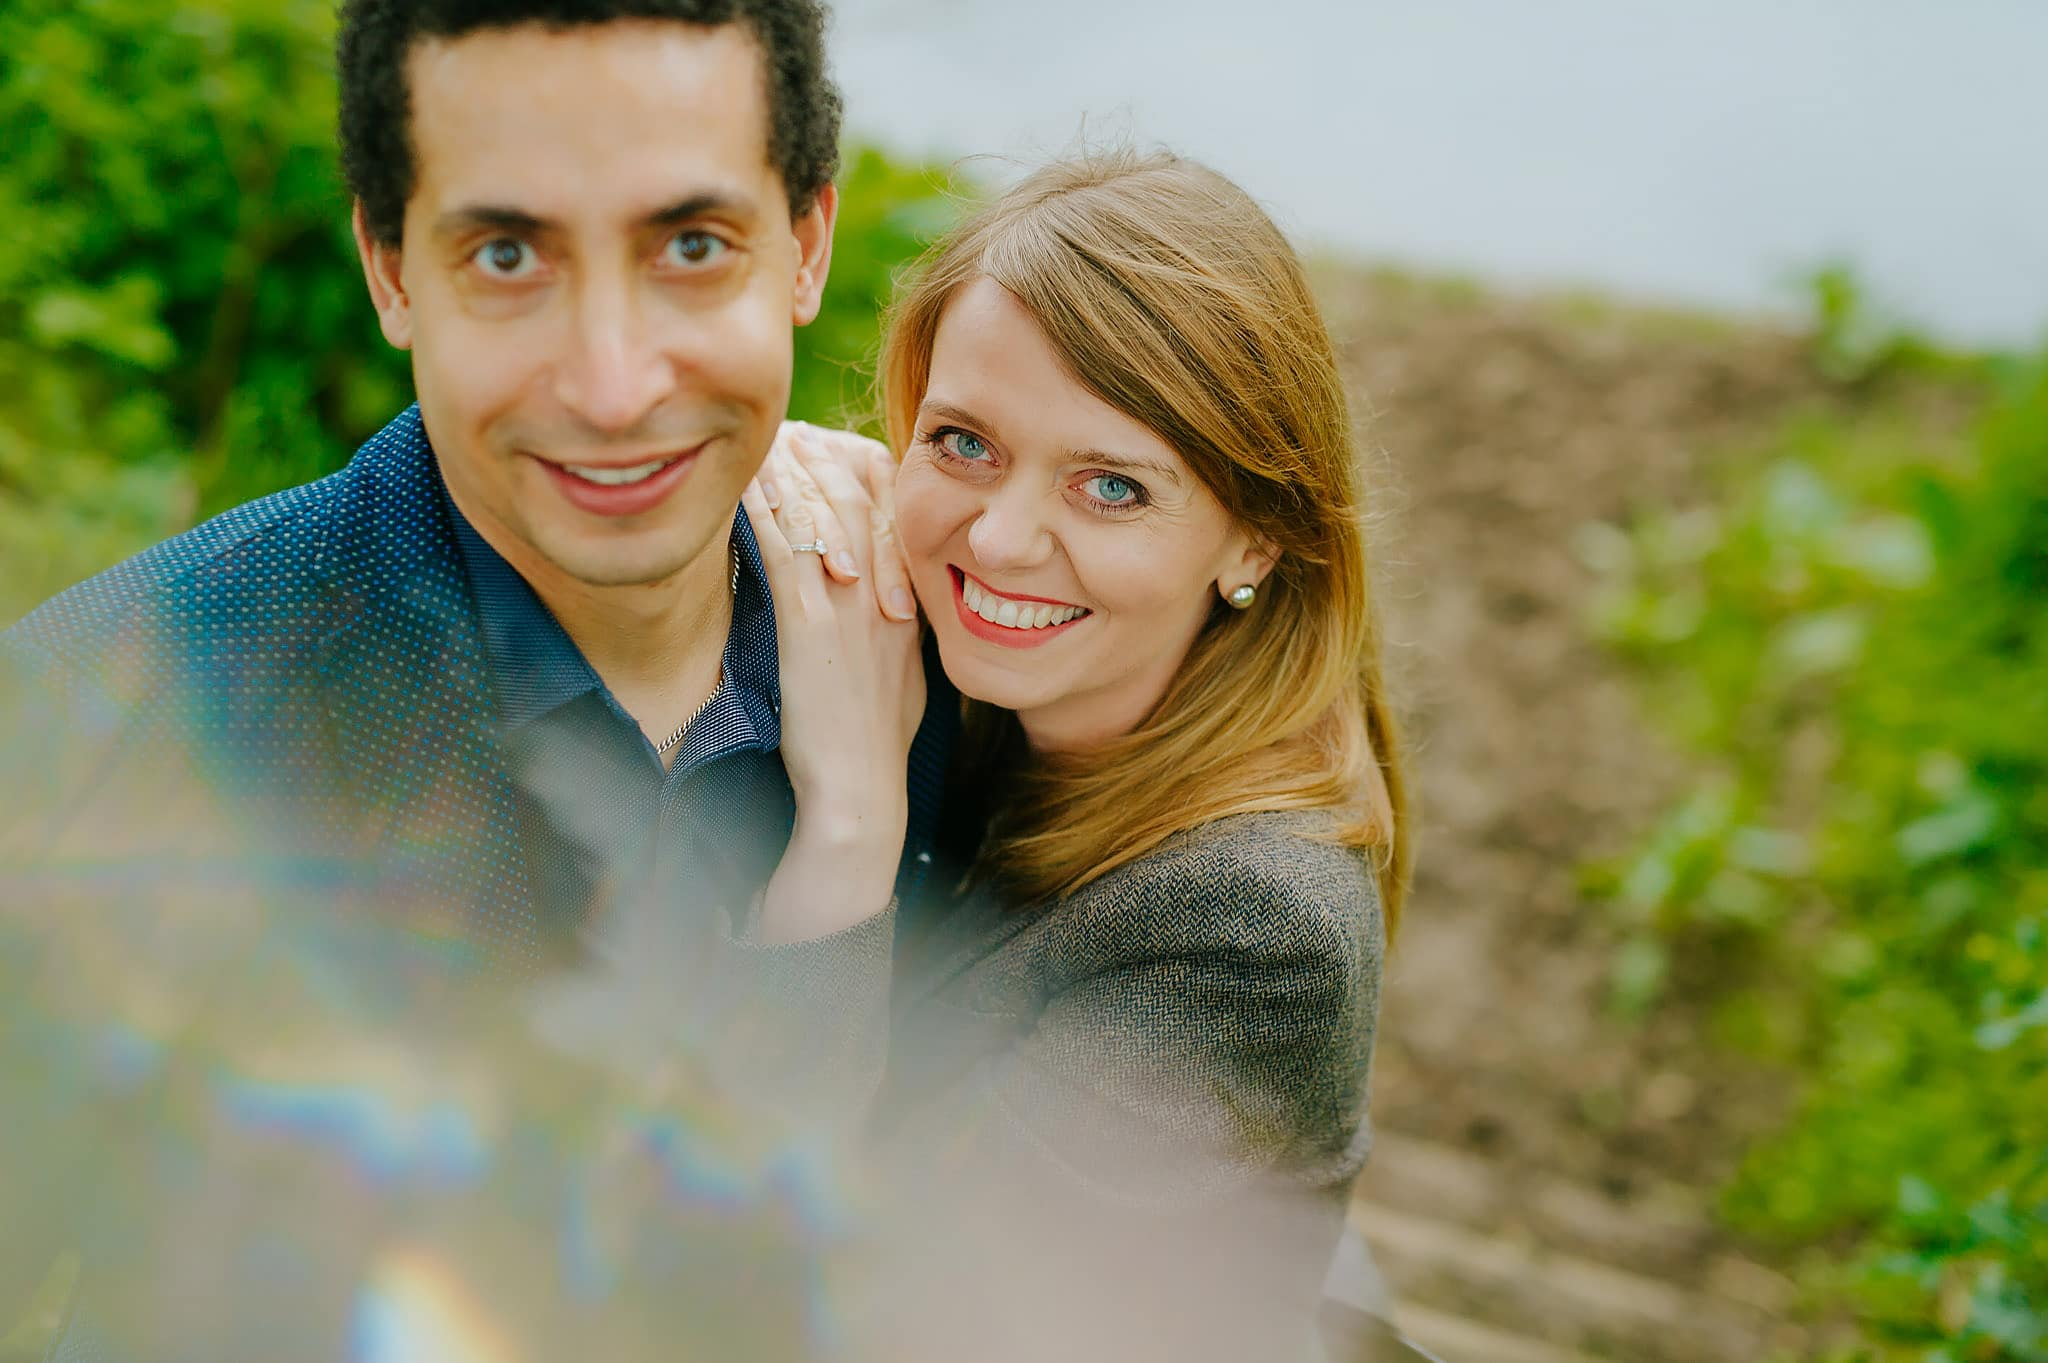 engagement photography worcester 10 - Chris + Malgosia | Engagement photography Worcester